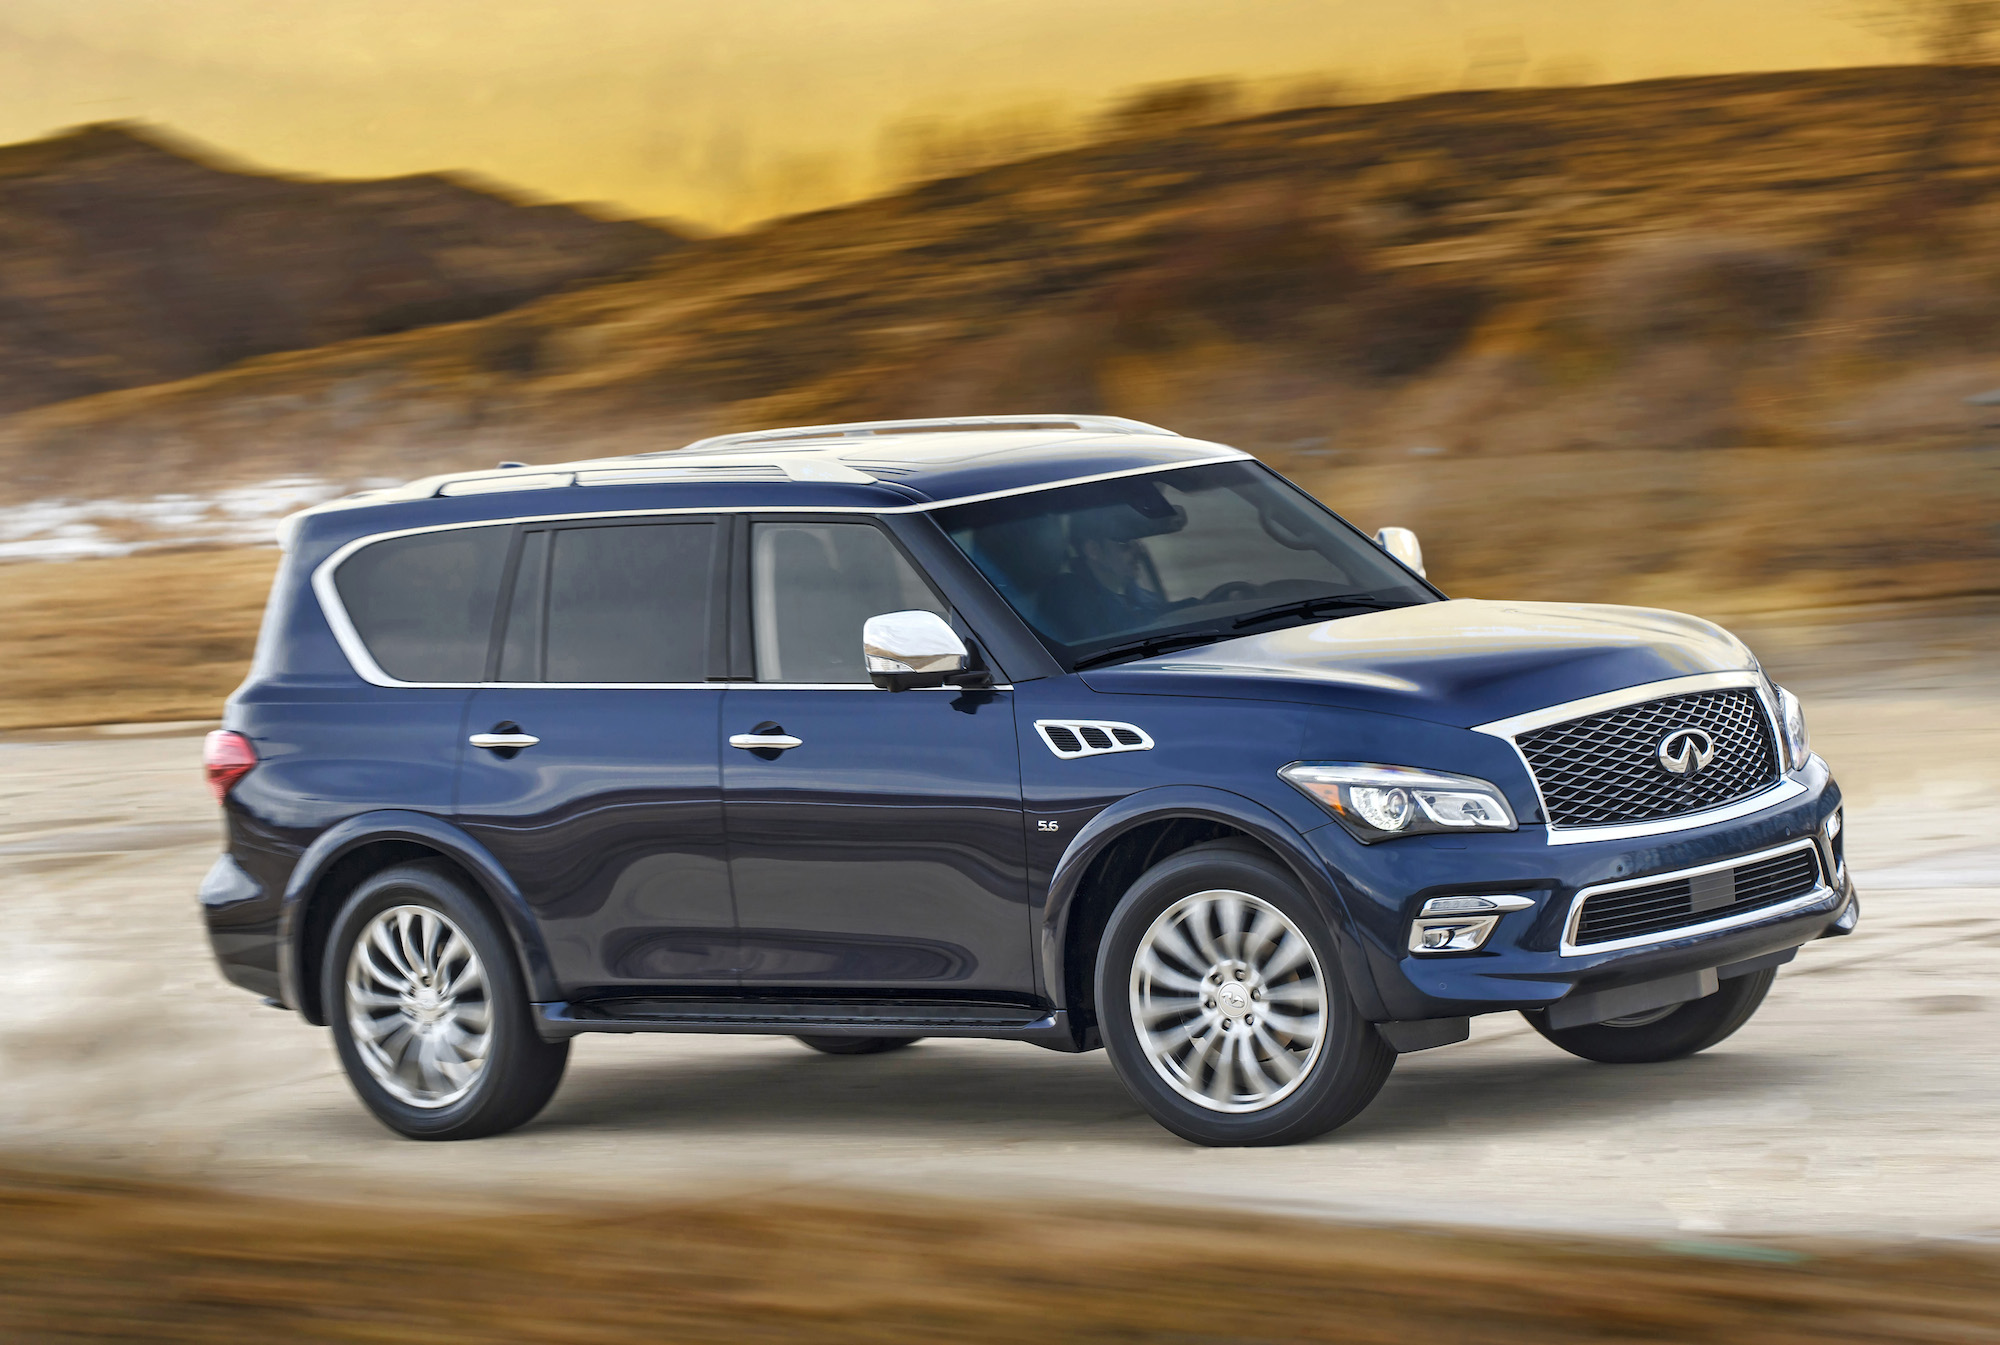 2017 infiniti qx80 review